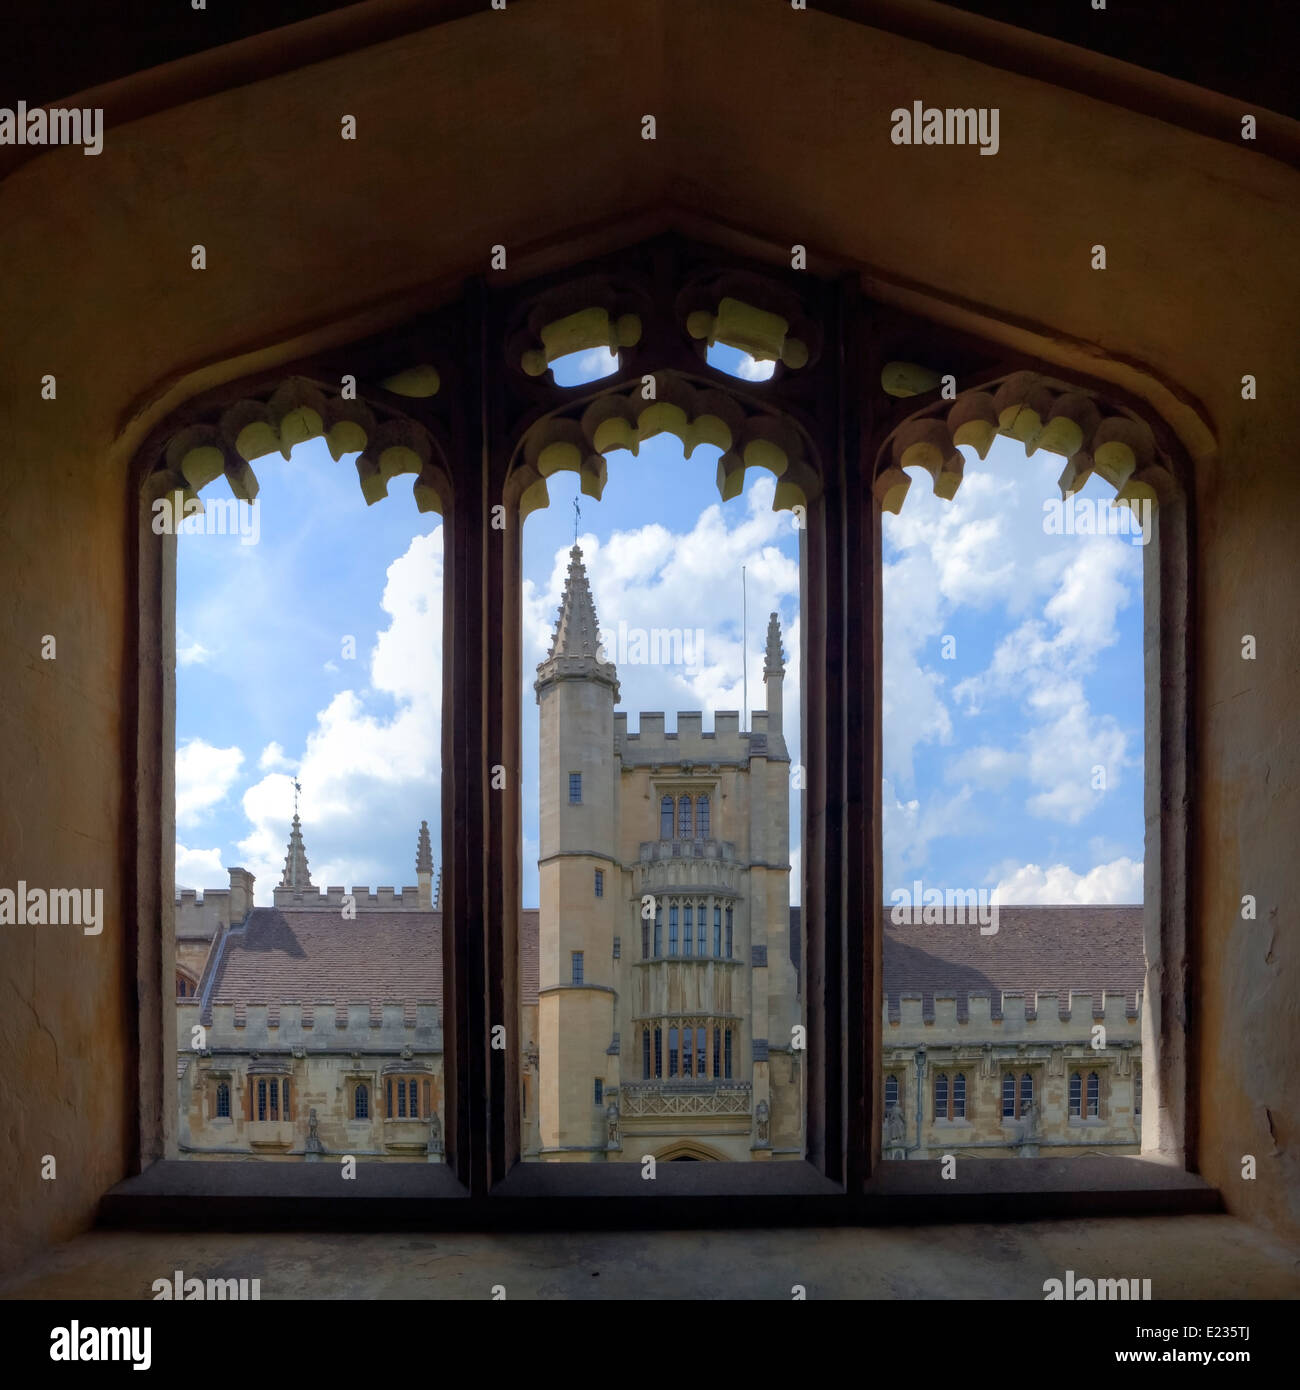 Magdalen College, Oxford, Oxfordshire, England, United Kingdom - Stock Image